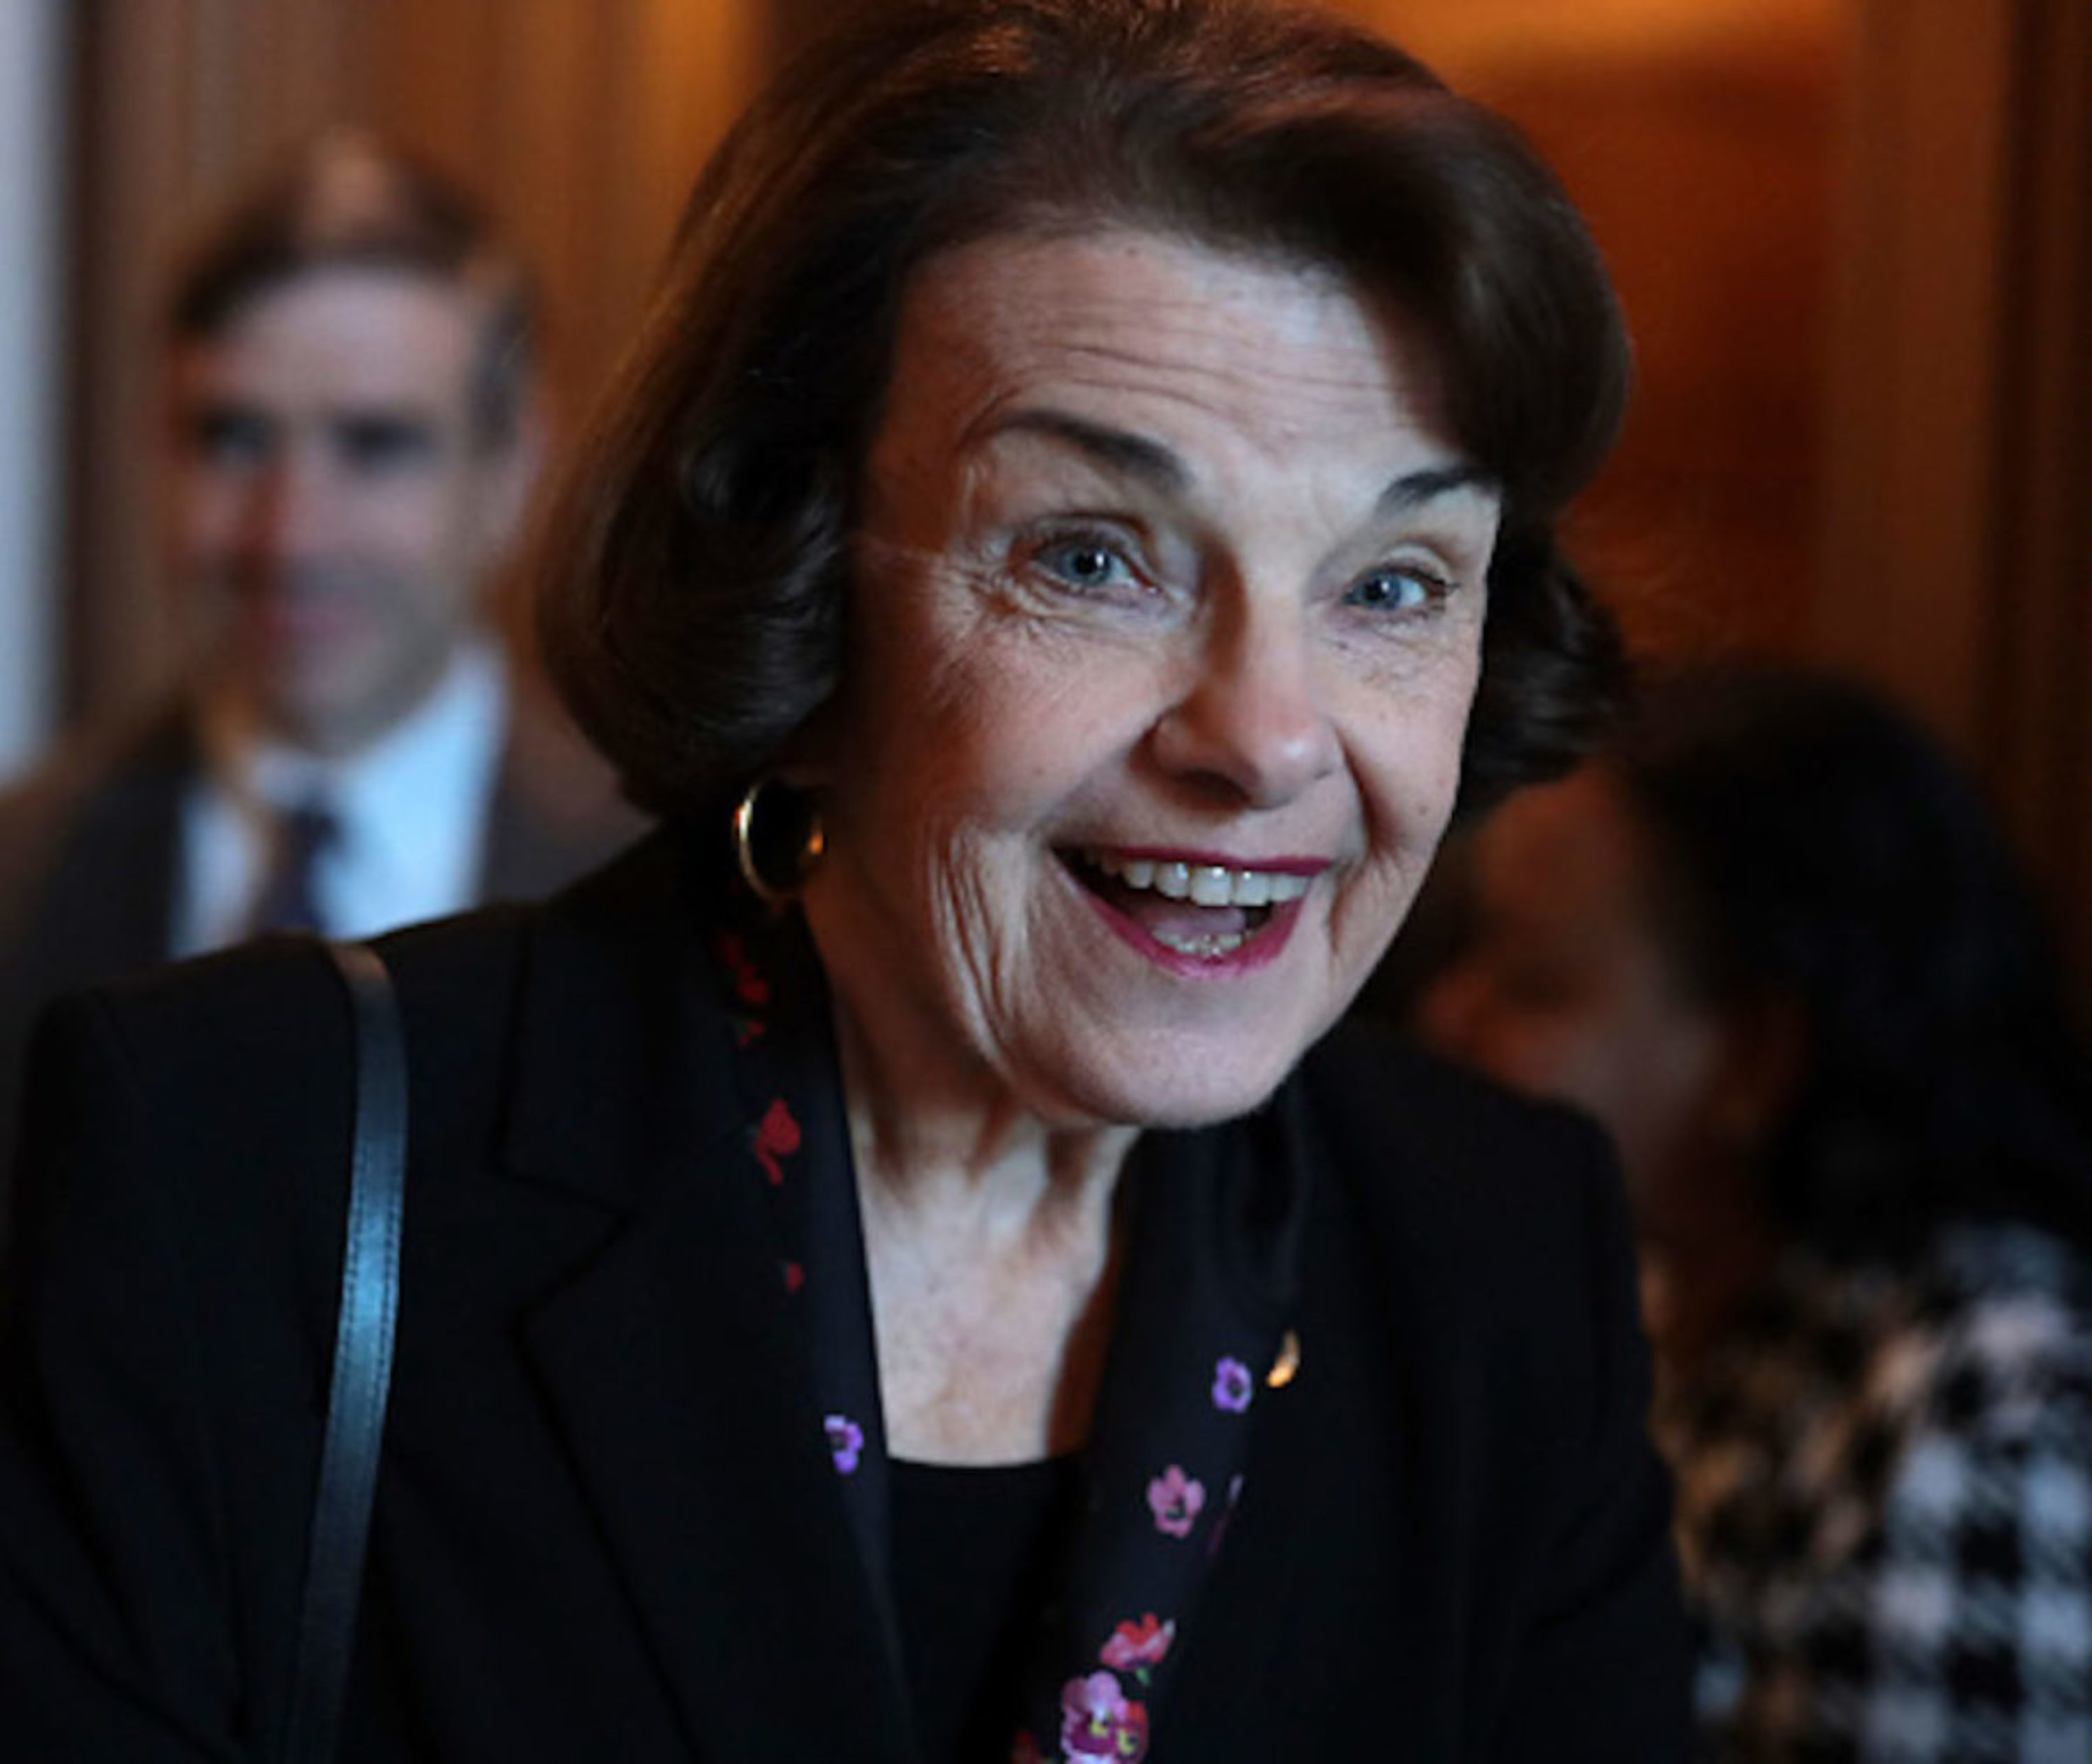 WASHINGTON, DC - FEBRUARY 05: U.S. Sen. Dianne Feinstein (D-CA) arrives at a weekly Senate Democratic Policy Luncheon at the U.S. Capitol February 5, 2019 in Washington, DC. Senate Democrats held the weekly policy lunch to discuss Democratic agenda. (Photo by Alex Wong/Getty Images)